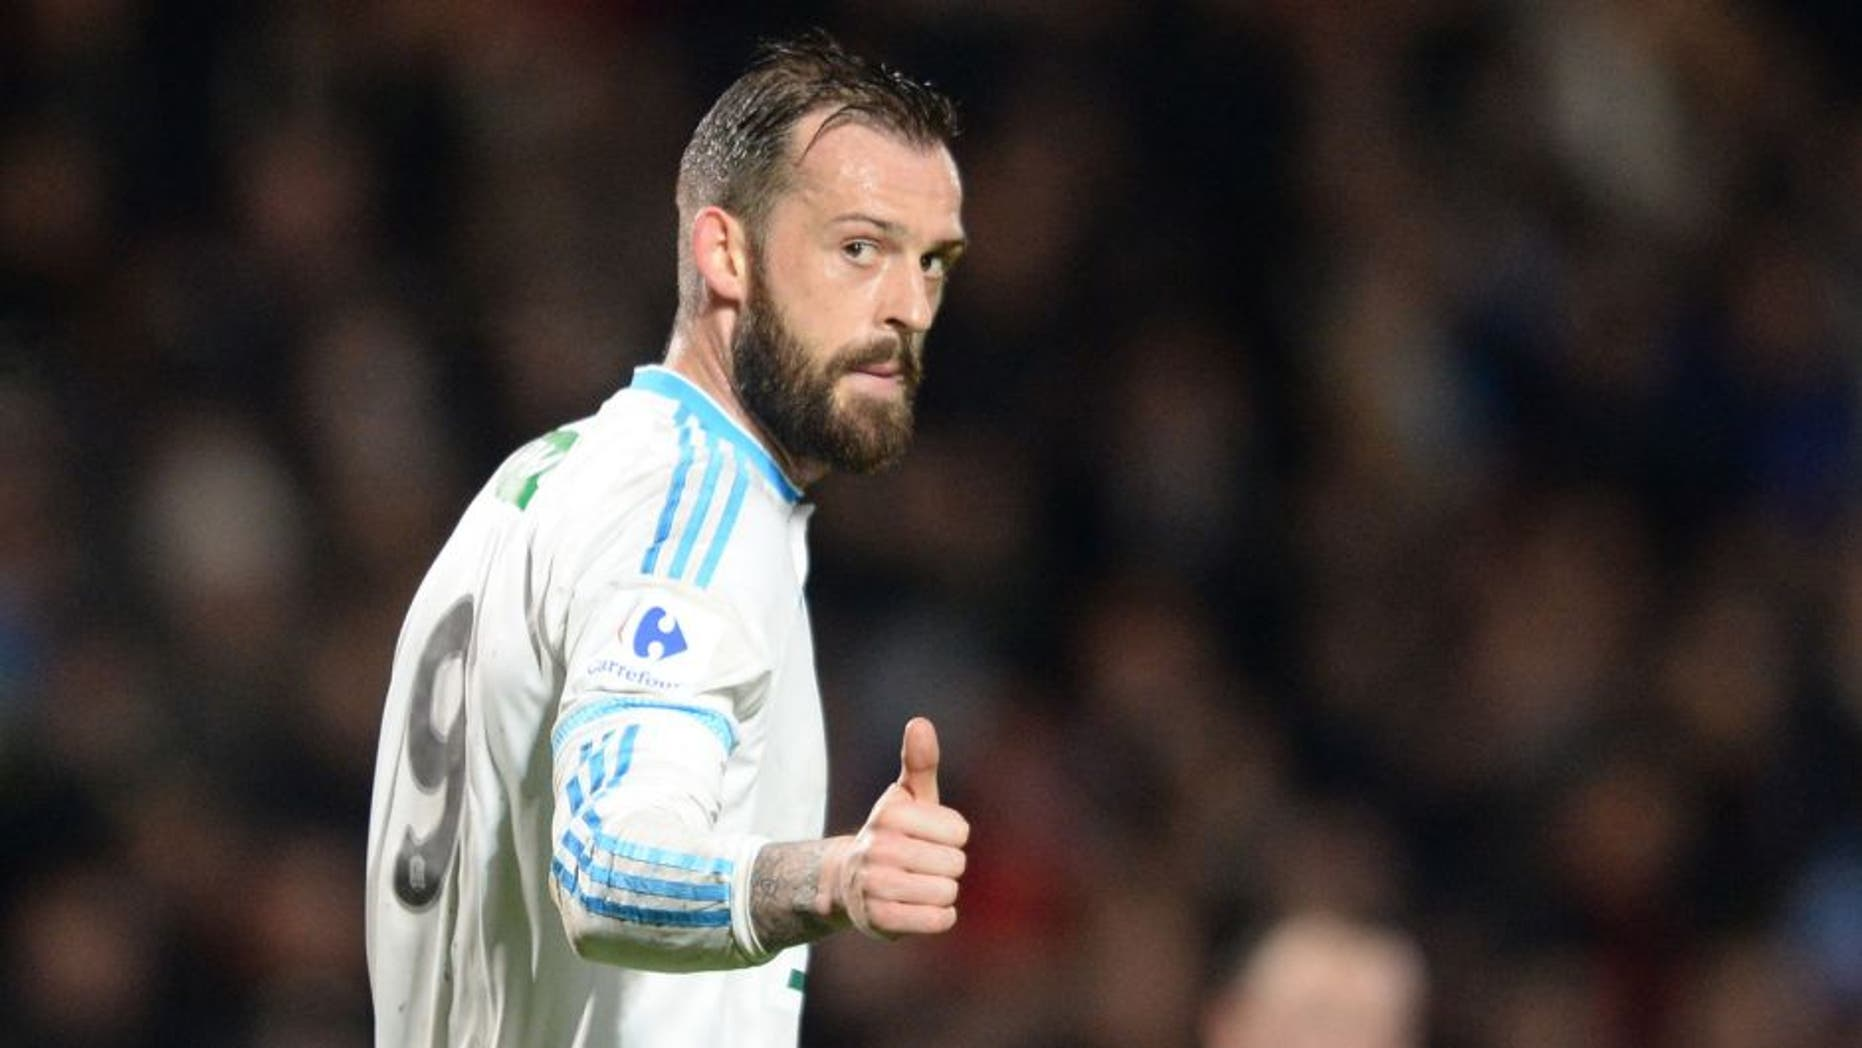 Marseille's Scottish forward Steven Fletcher reacts during the French Cup football match Trelissac vs Marseille on February 11, 2016 at the Chaban-Delmas stadium in Bordeaux, southwestern France. AFP PHOTO / NICOLAS TUCAT / AFP / NICOLAS TUCAT (Photo credit should read NICOLAS TUCAT/AFP/Getty Images)